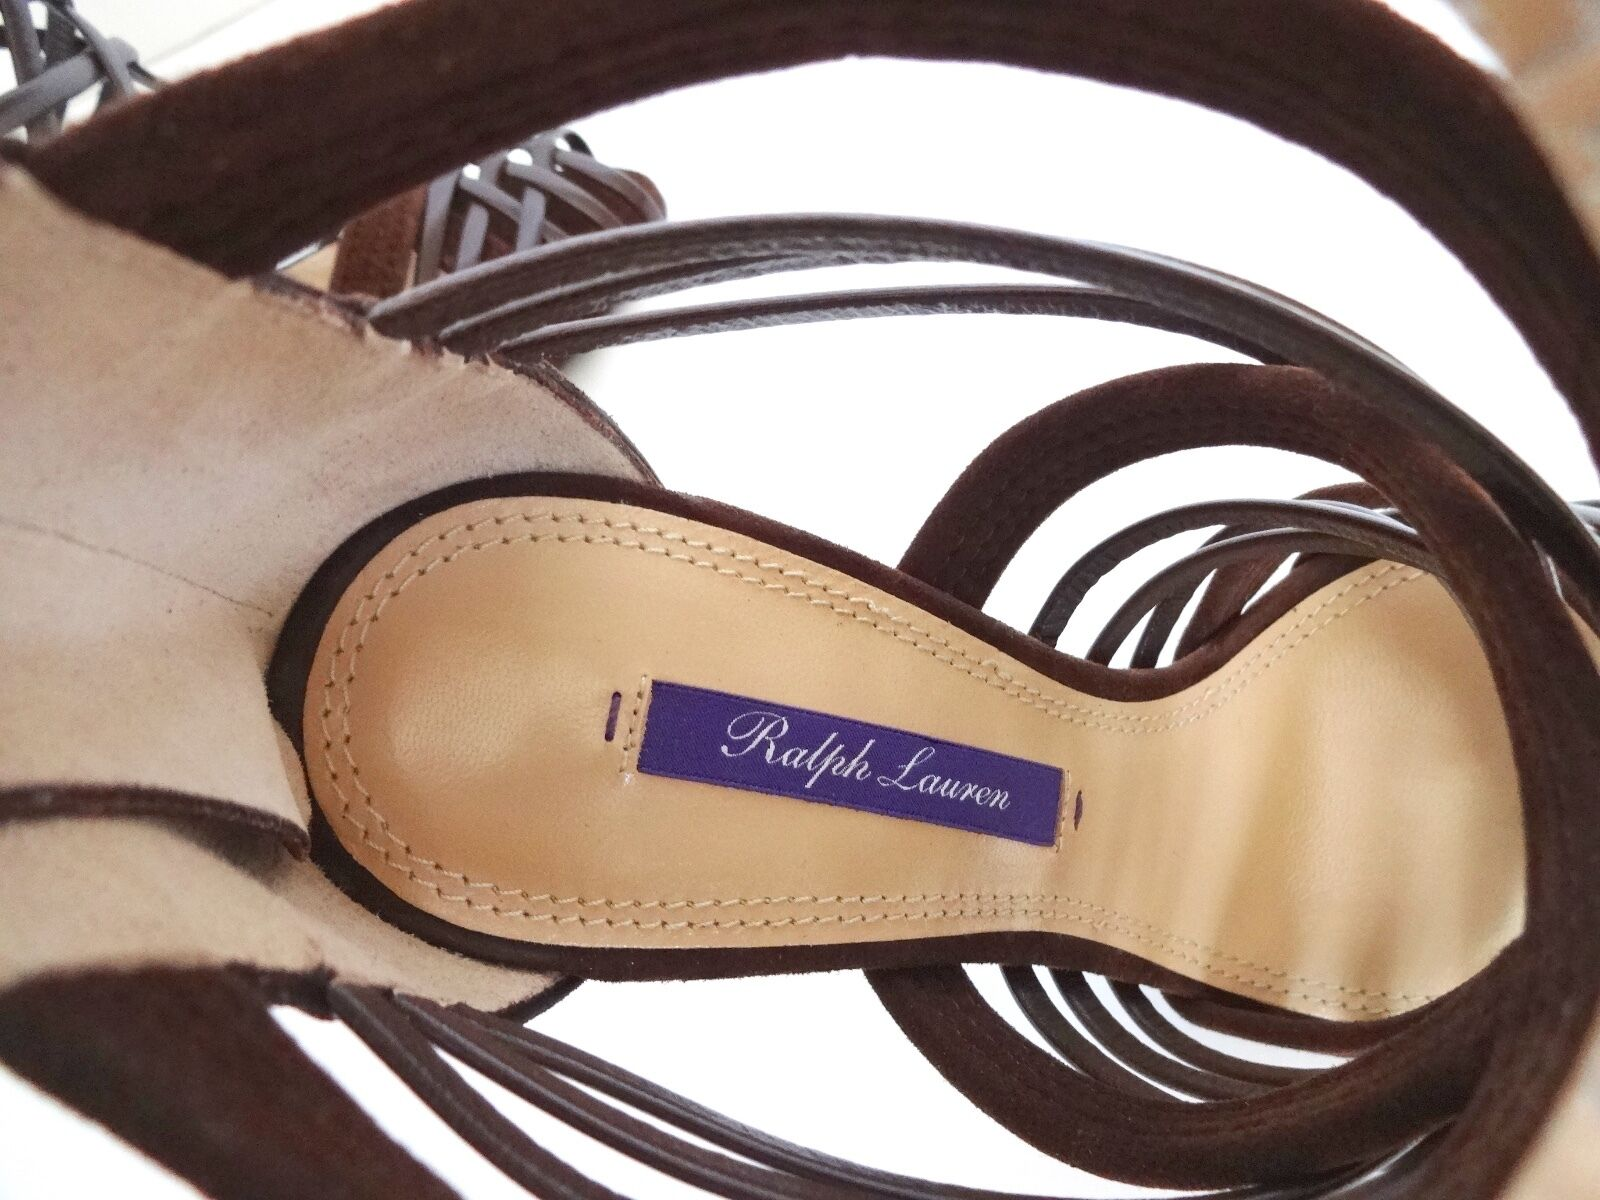 New Ralph Lauren Collection  Brown Suede Bliara Strappy Sandals Sandals Sandals shoes 35 B 3ebb81